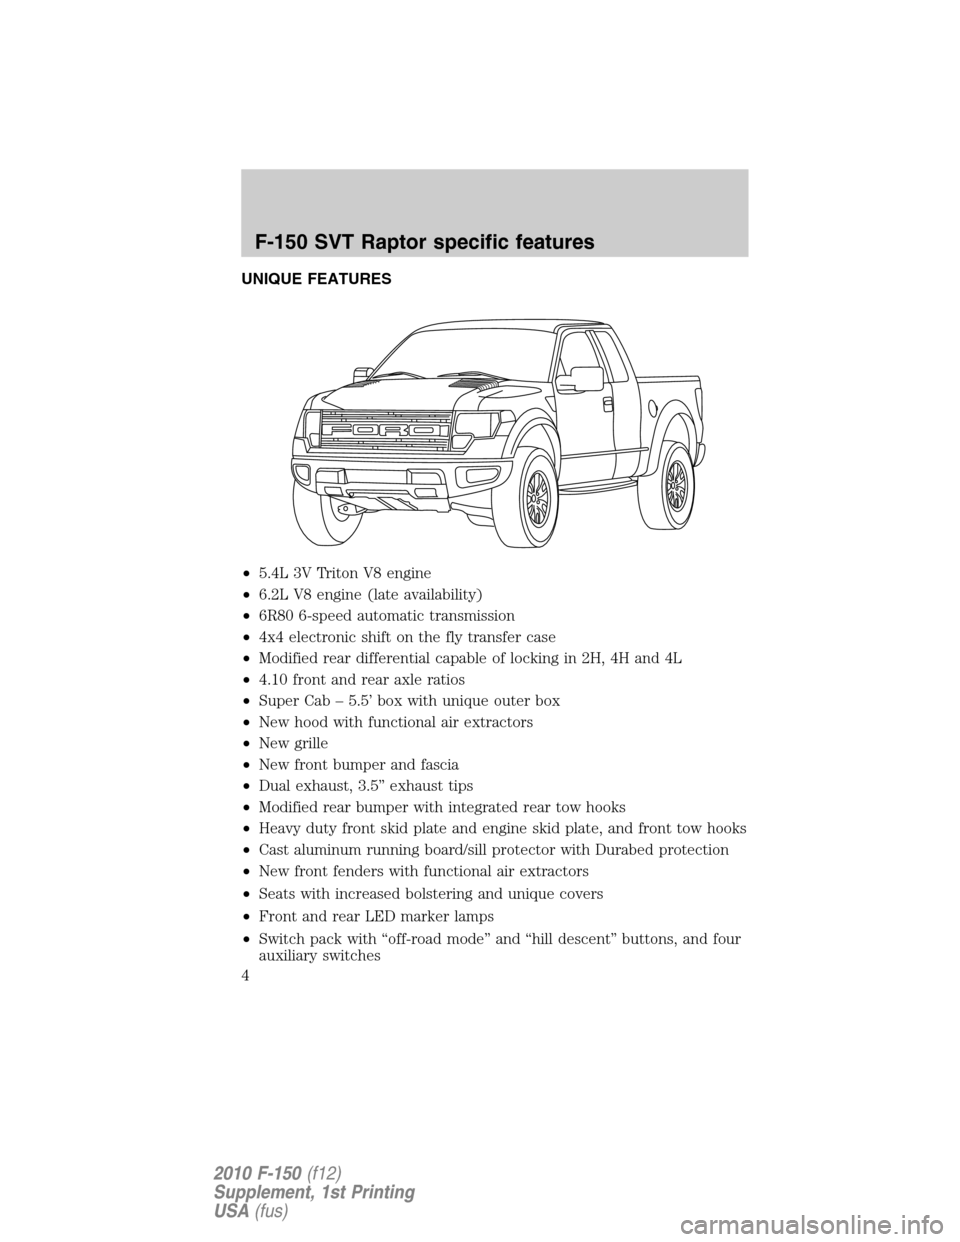 Ford Raptor Aux Switch Wiring 2014 Diagram F150 2010 12 G Supplement Manual Upfitter Switches